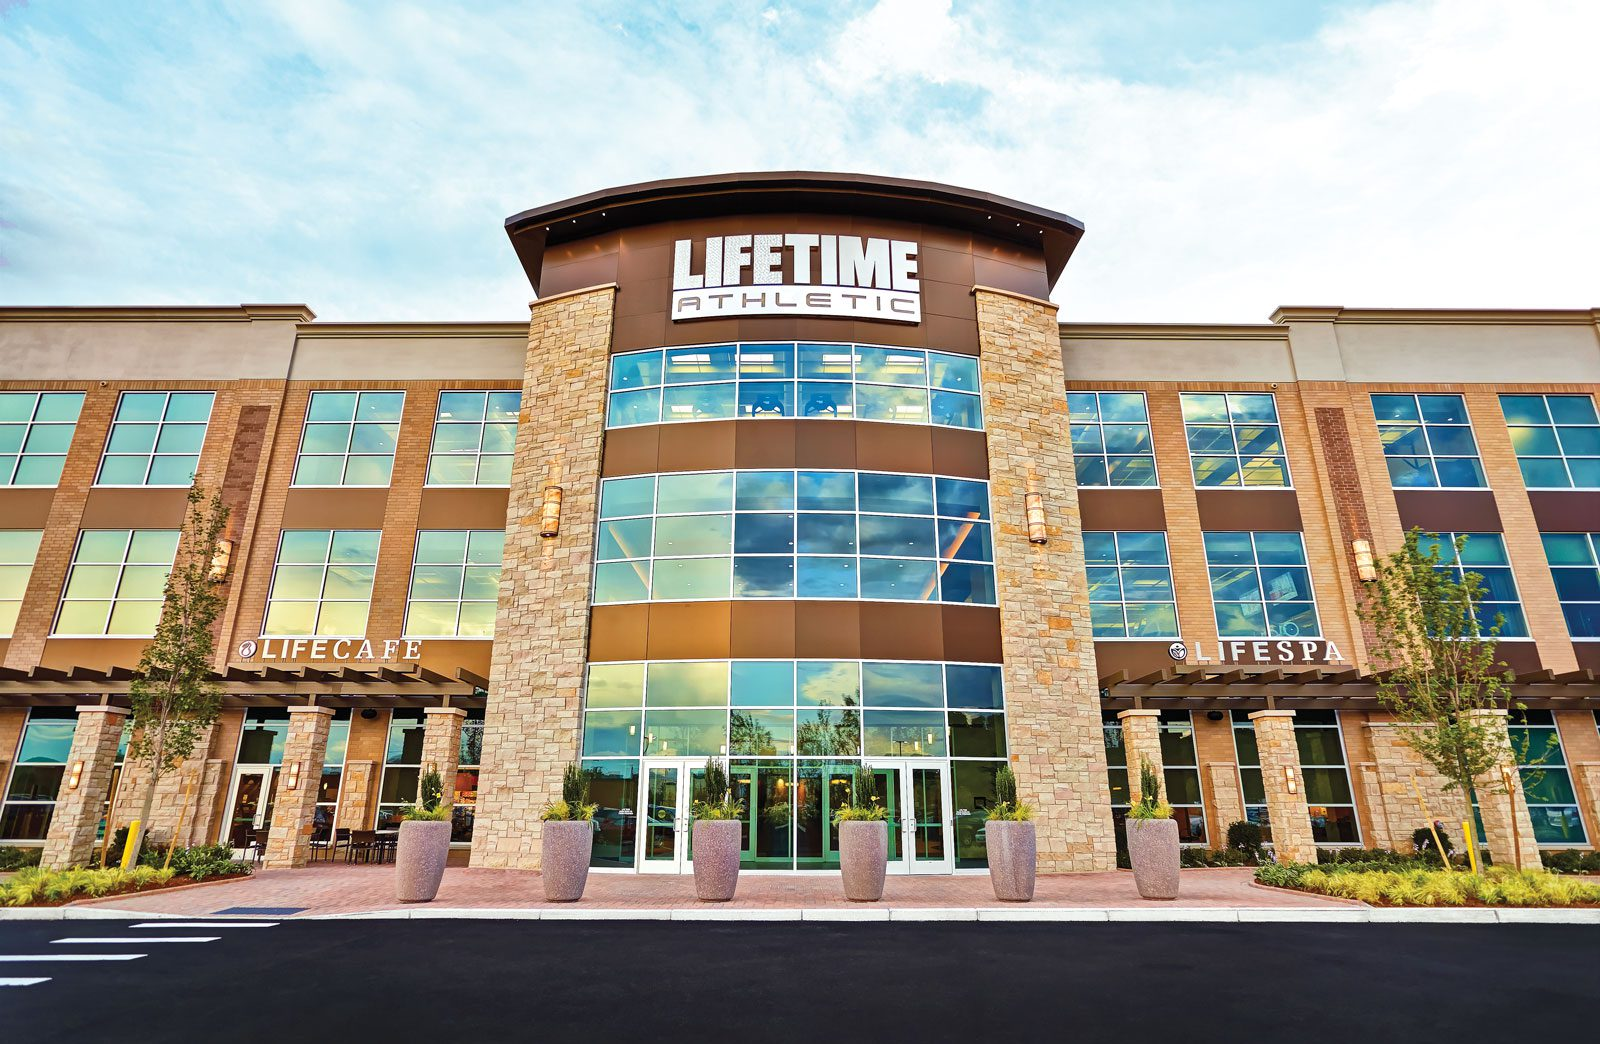 Life Time Fitness Pulls The Plug On Its In Club Cable News Channels Observer